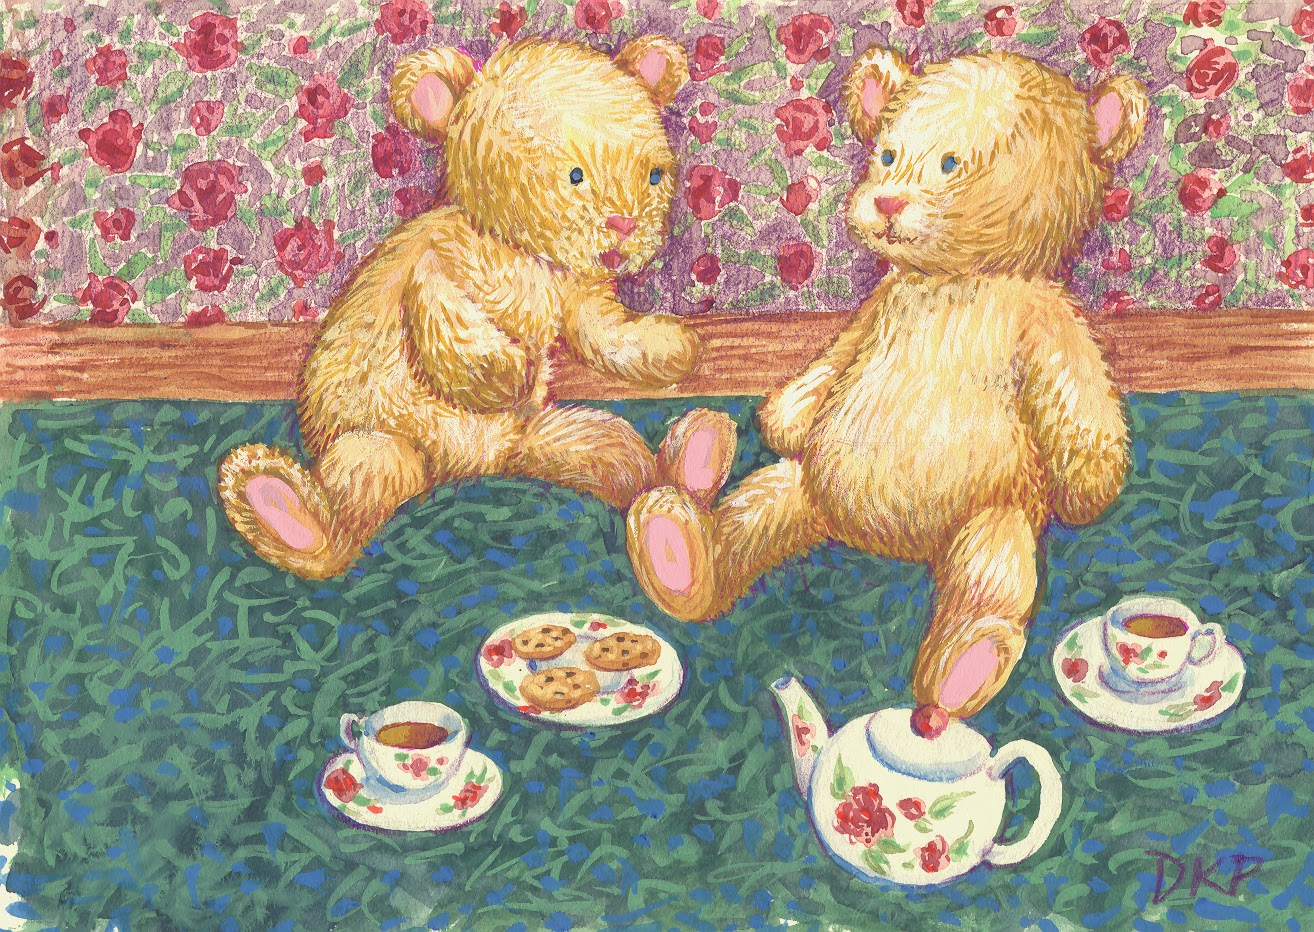 teddy bear tea party art public